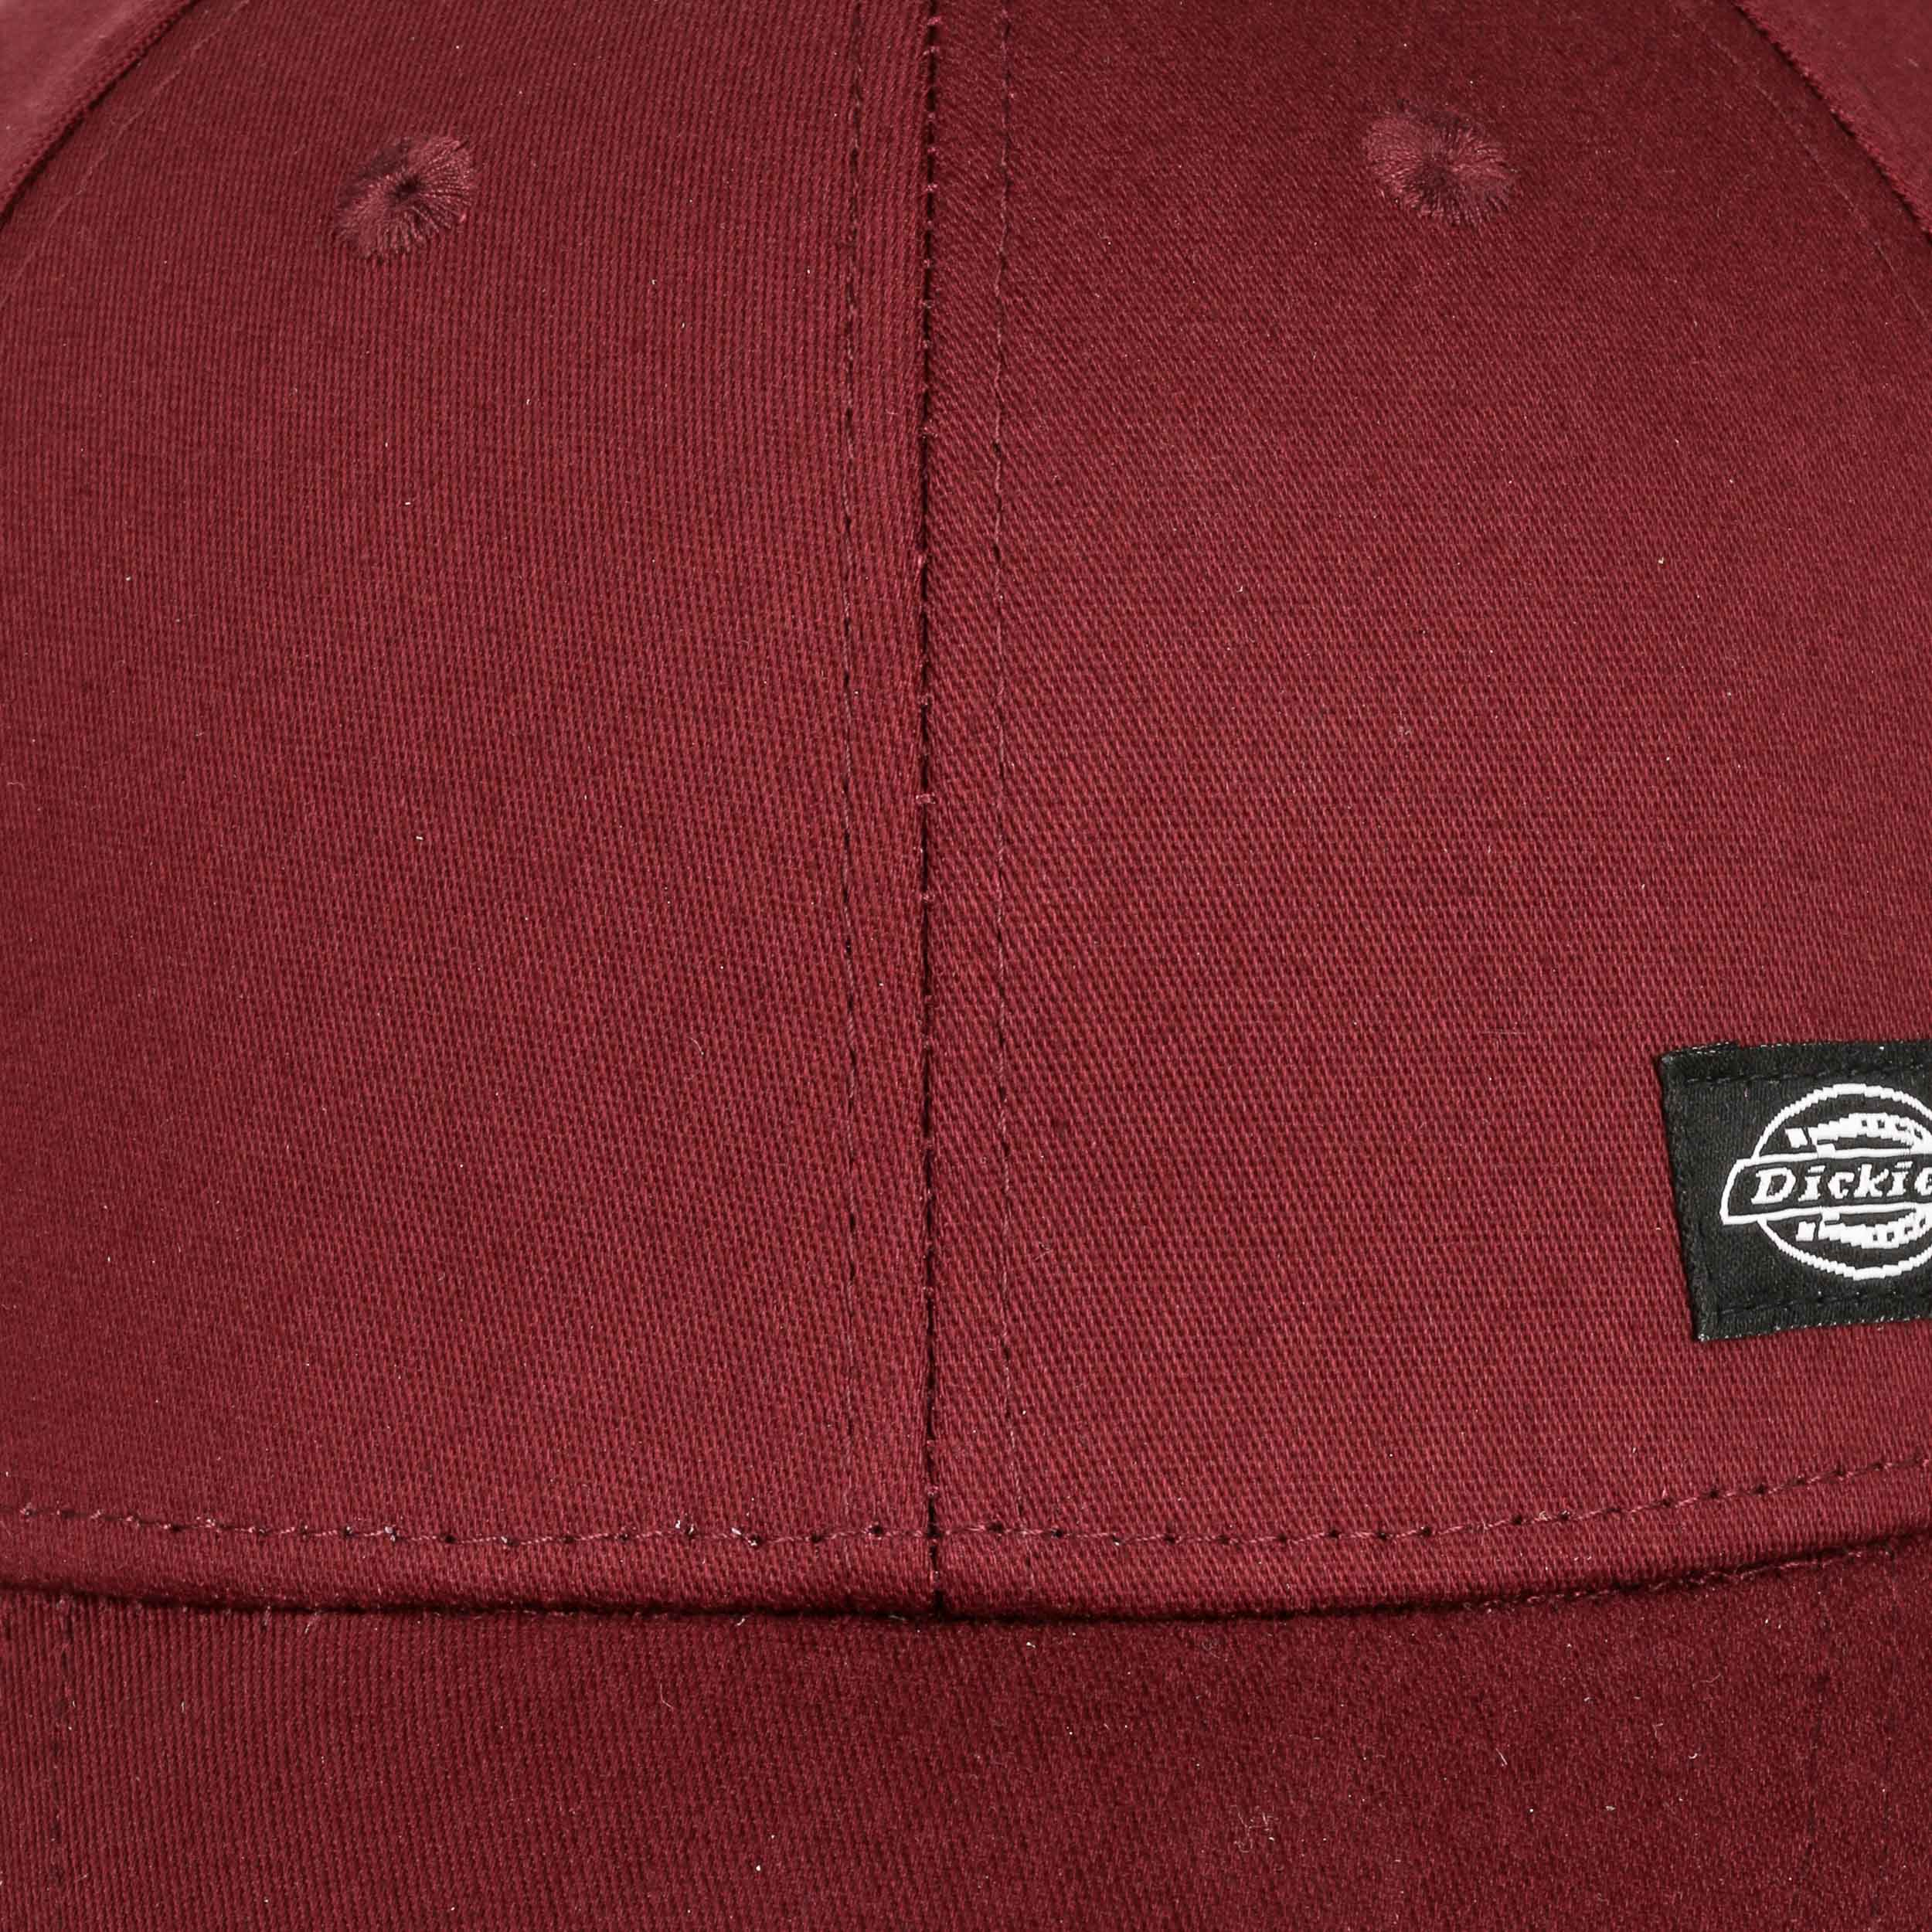 6316b9be737 ... Morrilton Fitted Cap by Dickies - bordeaux 4 ...